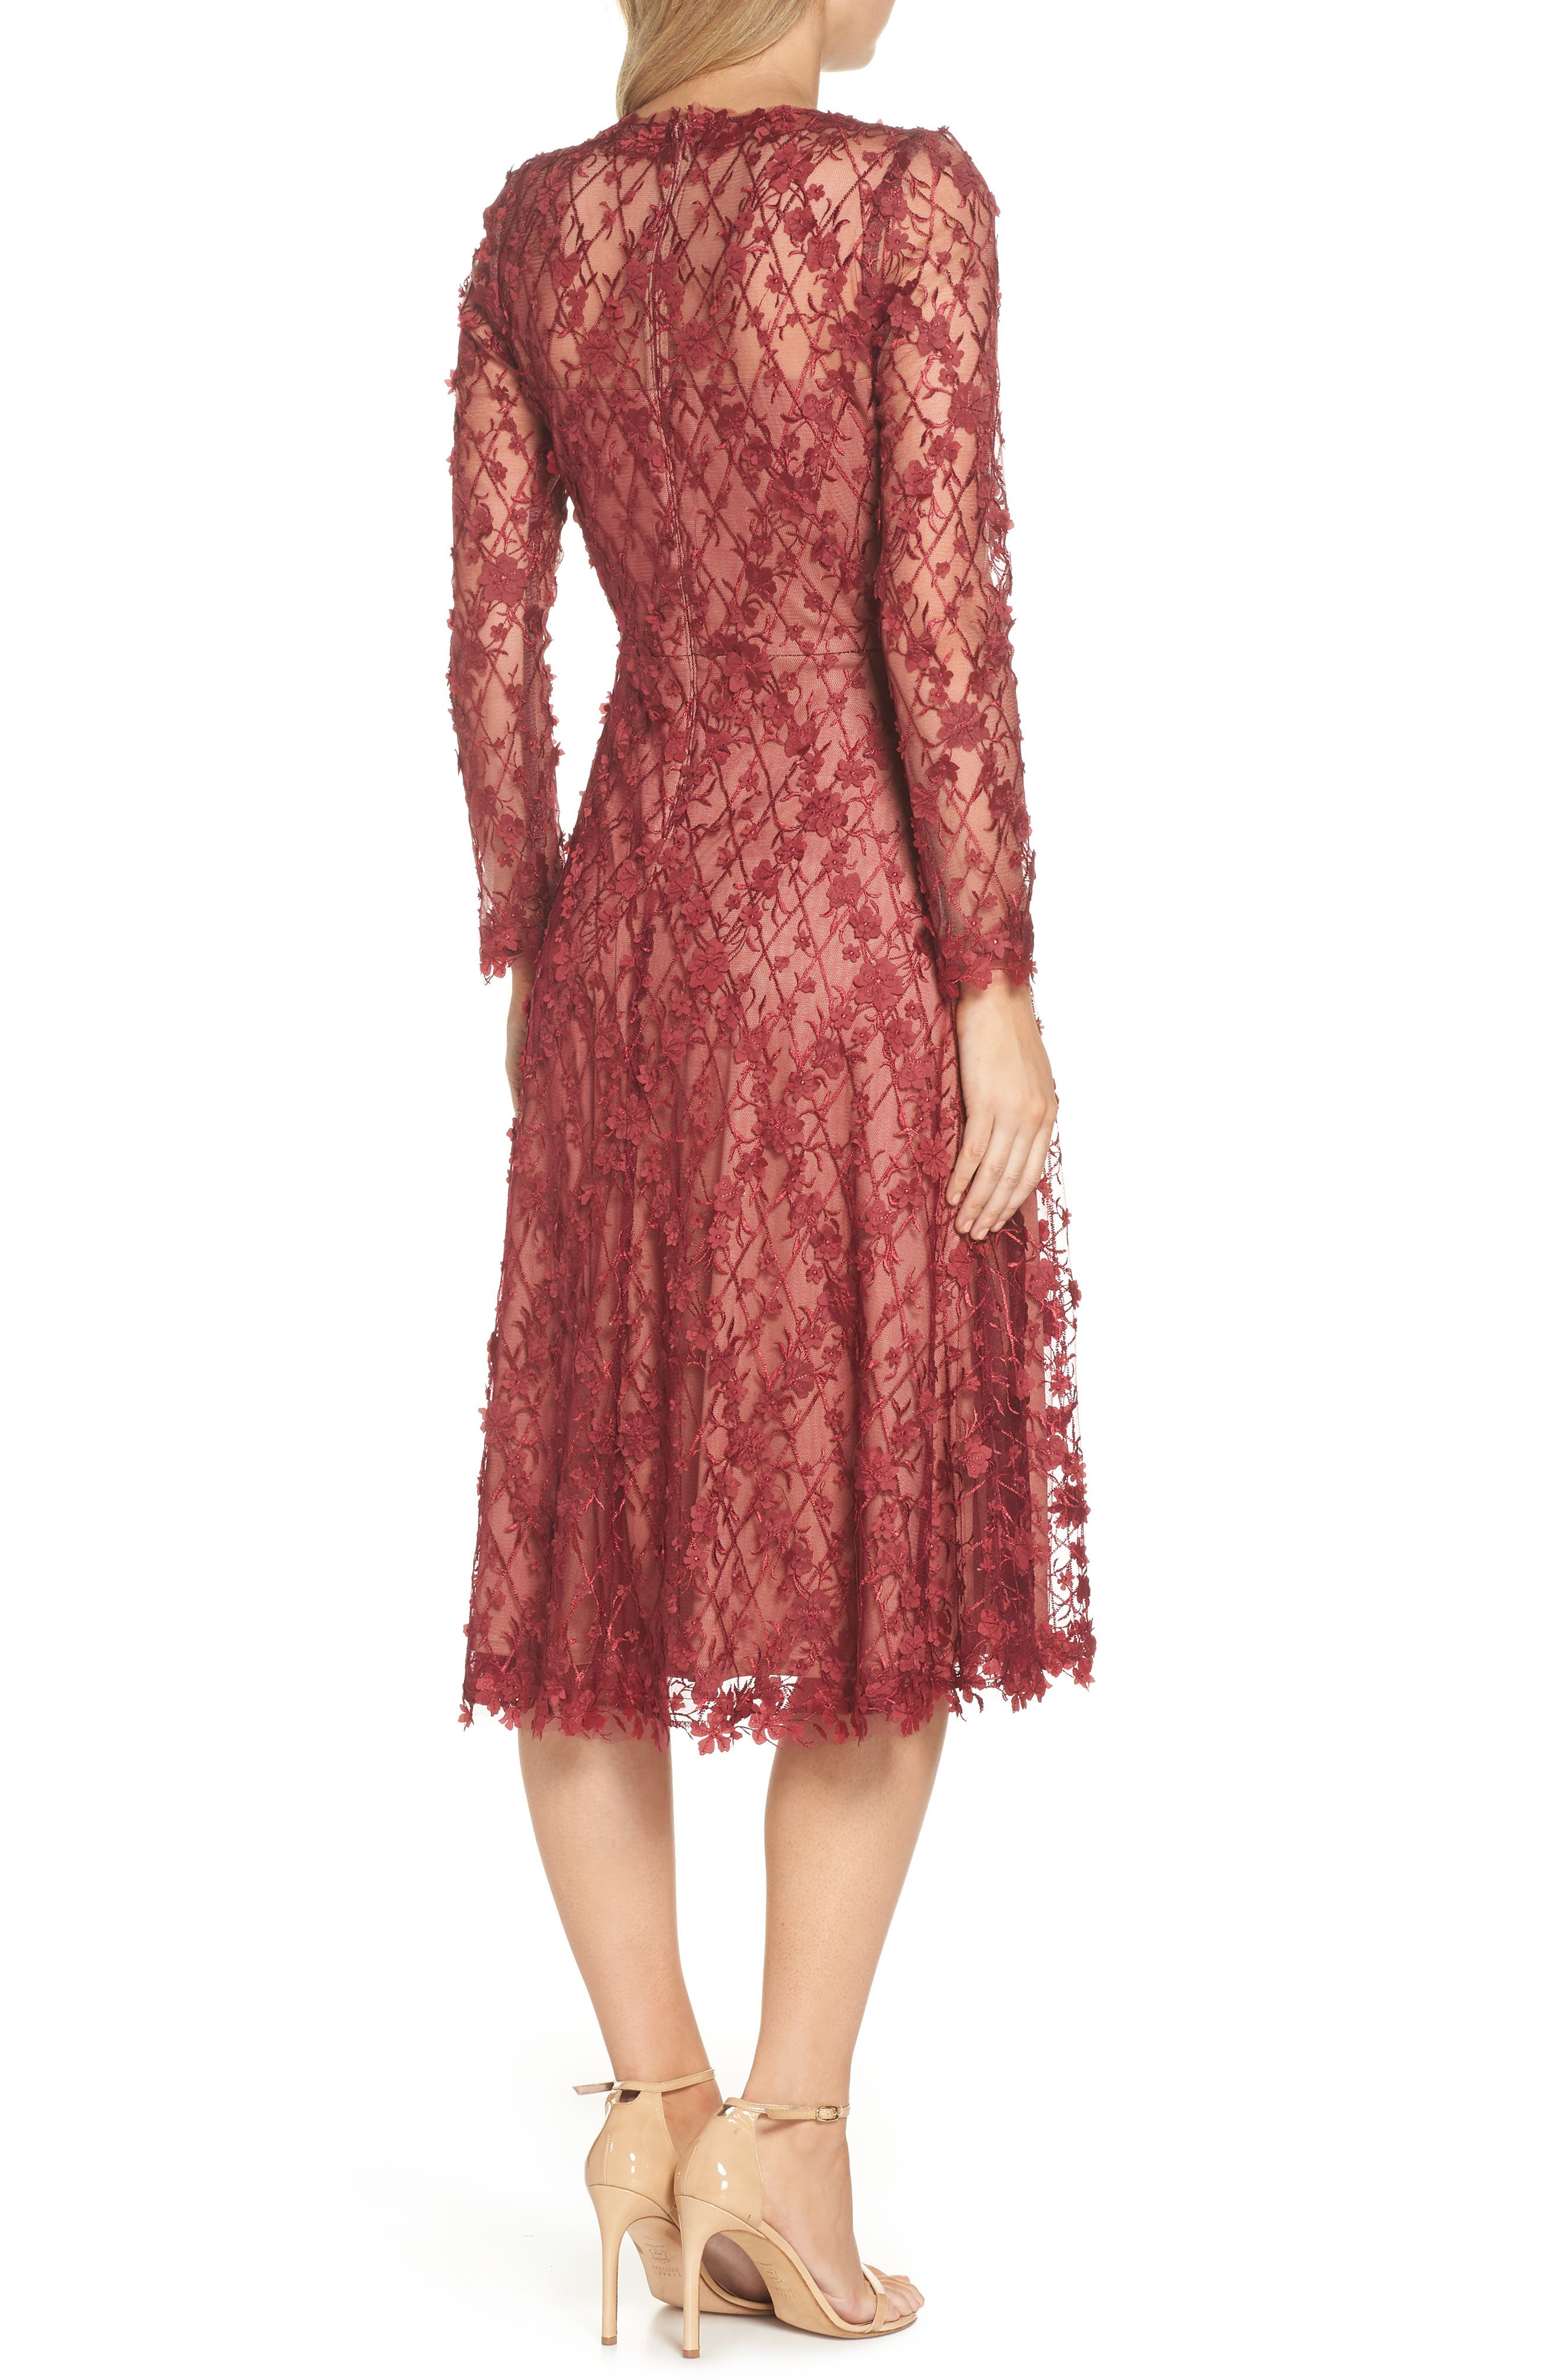 3D Flowers Lace Dress,                             Alternate thumbnail 2, color,                             Rosewood/ Nude